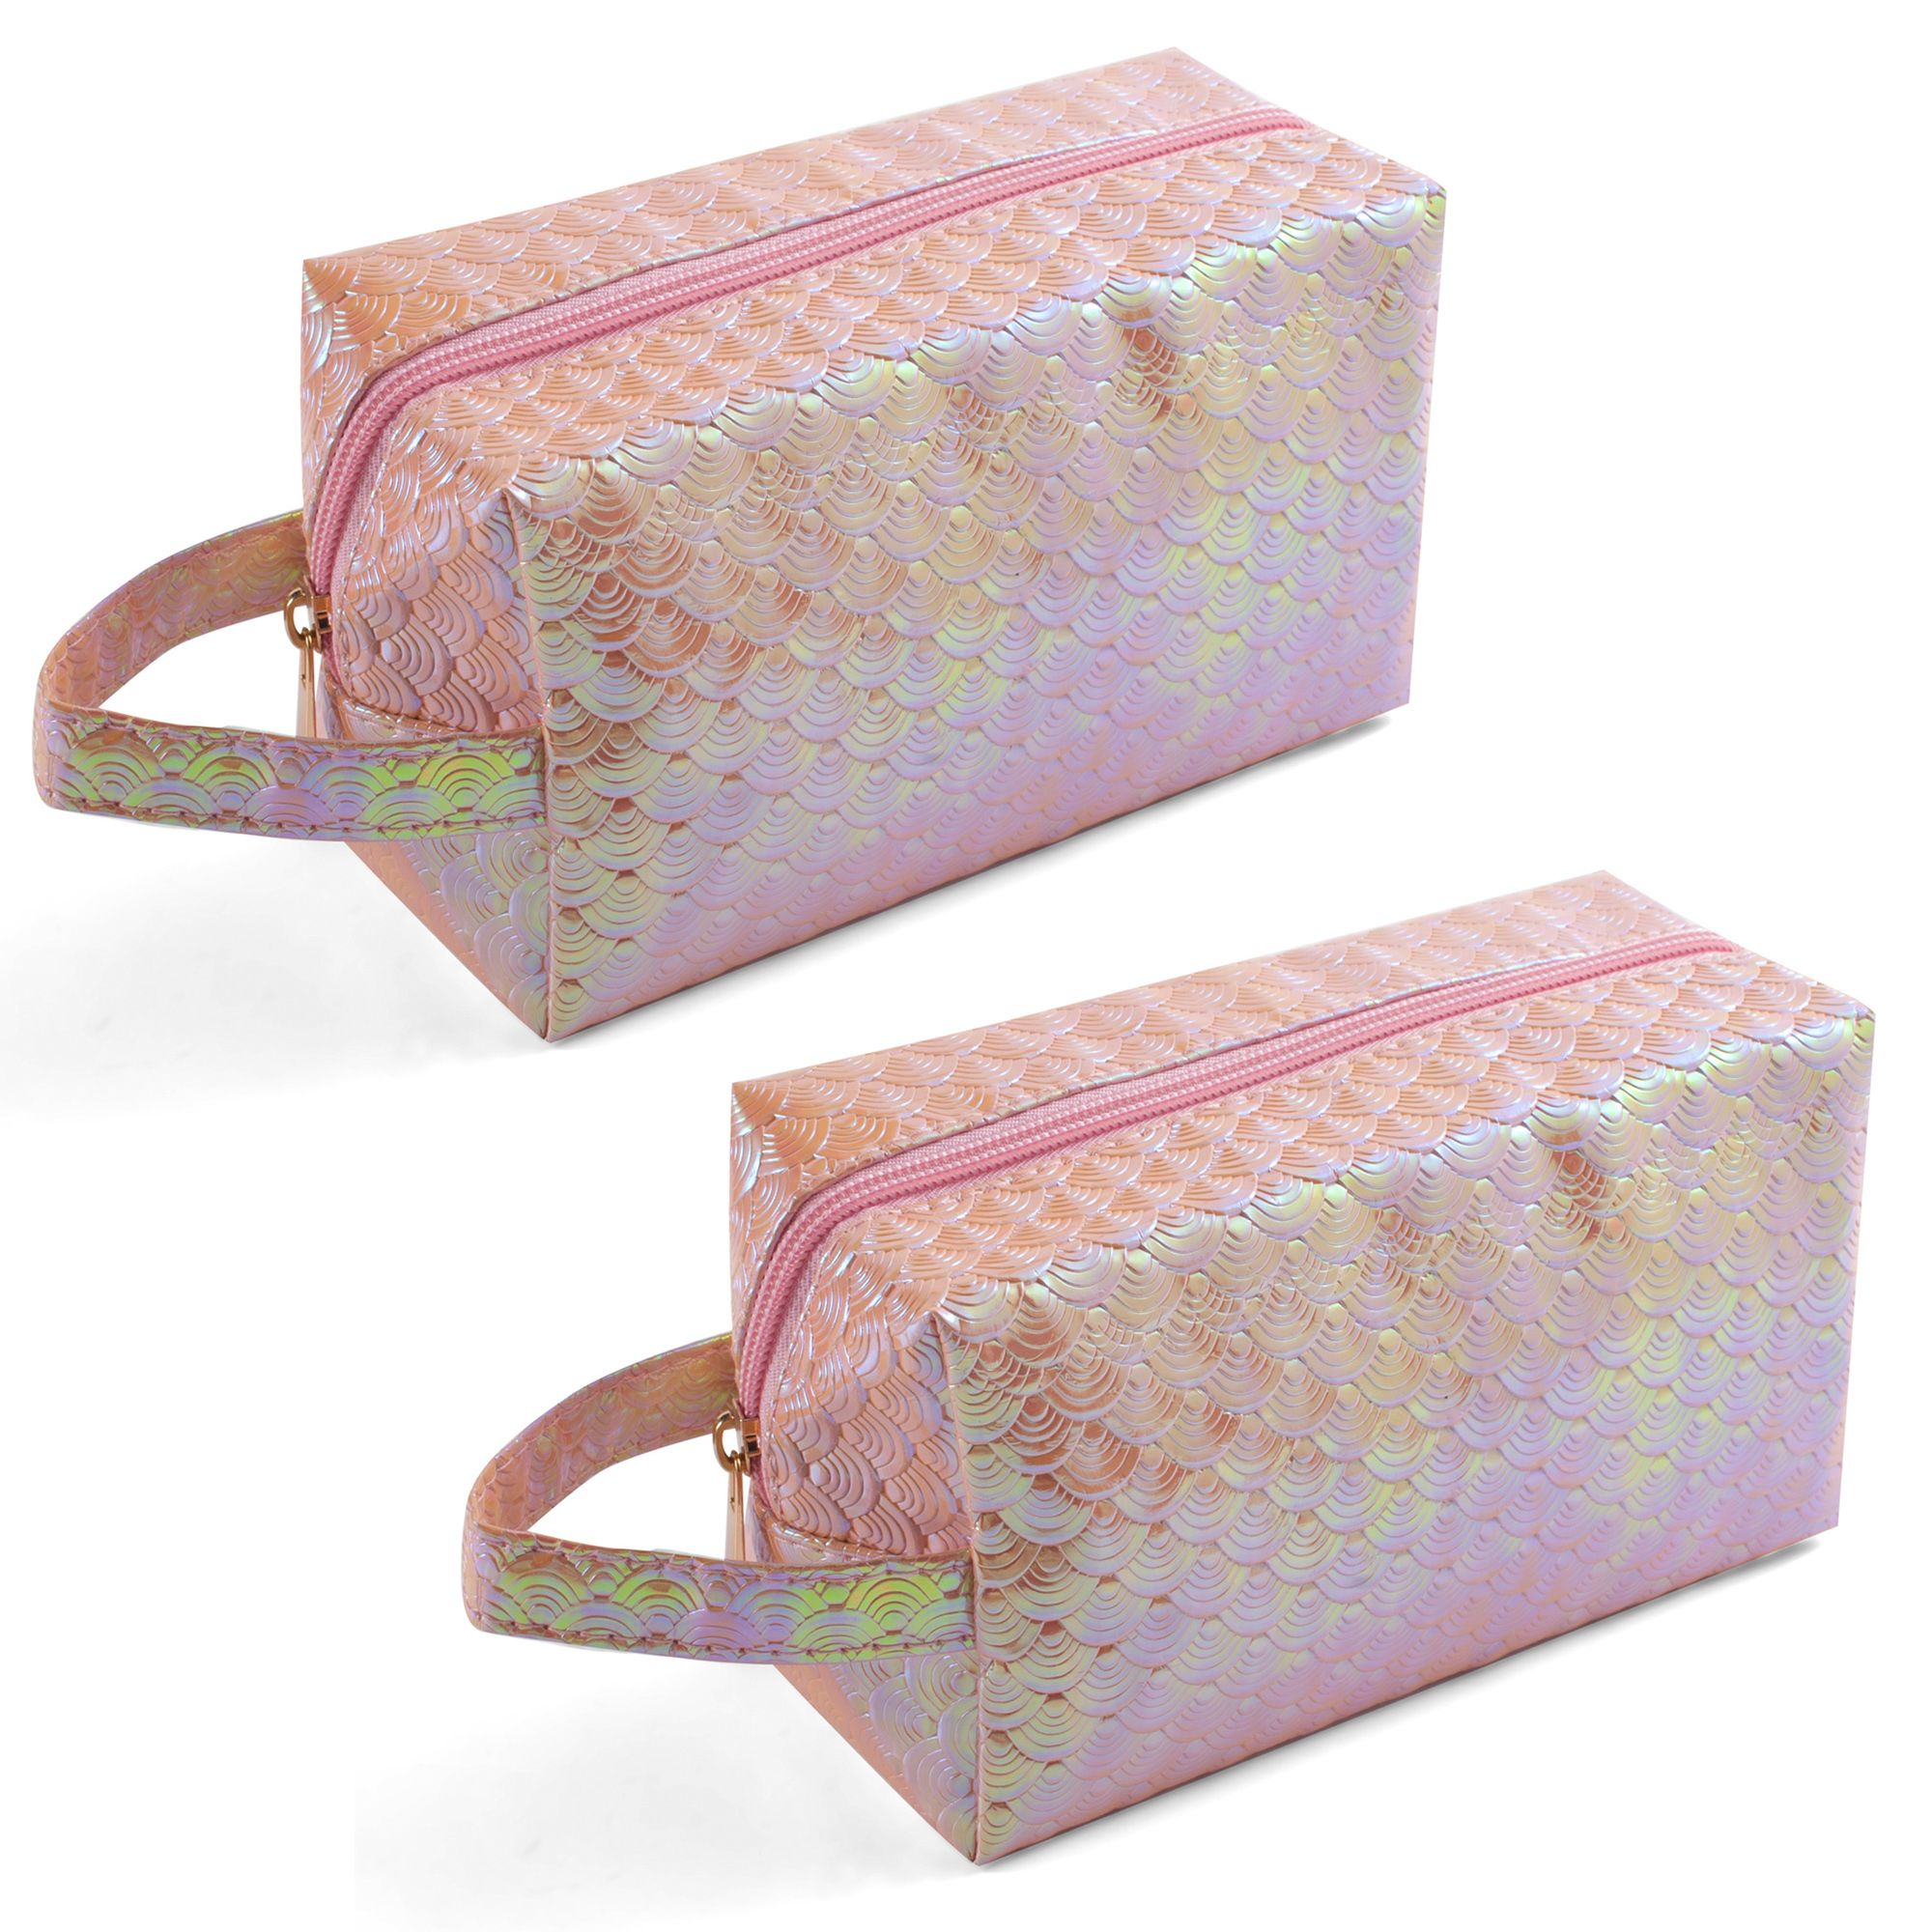 Cosmetic bag by Zodaca 2-pack Women Hanging Cosmetic Makeup Organizer Travel Bag Traveling Toiletry Make up Pencil Case Zip Pouch - Coral Shiny Mermaid